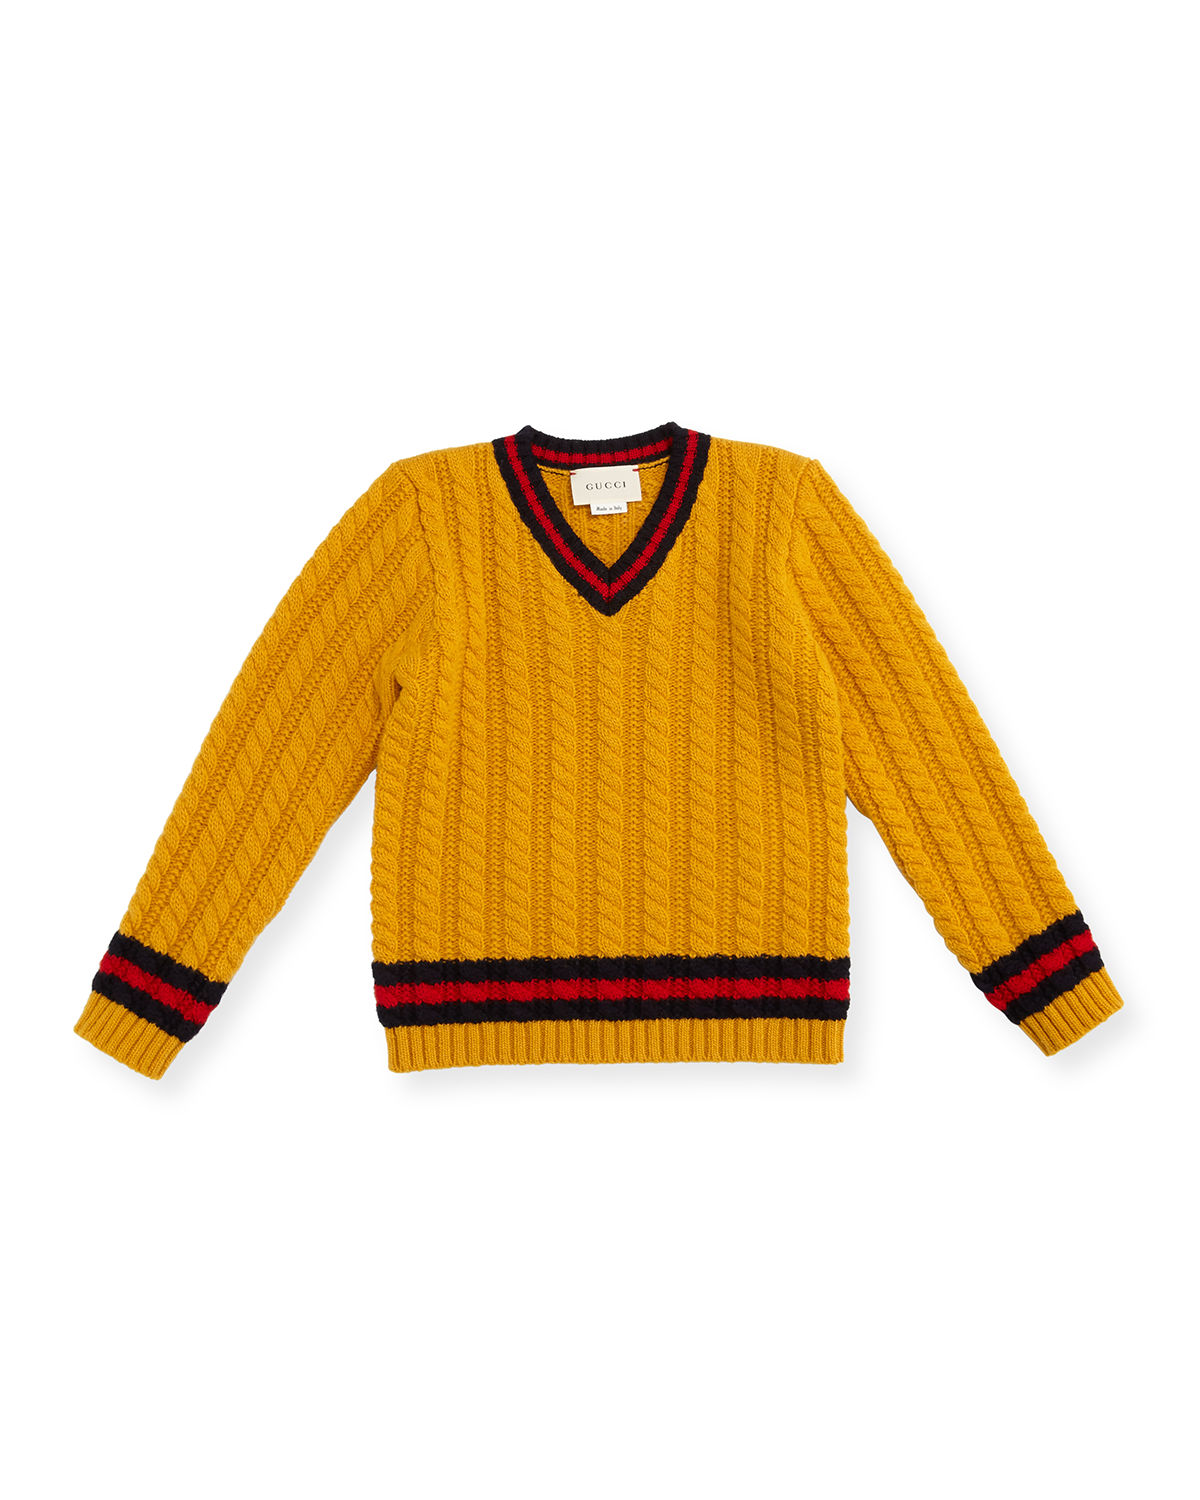 CableKnit Wool Sweater Boys 936 Months